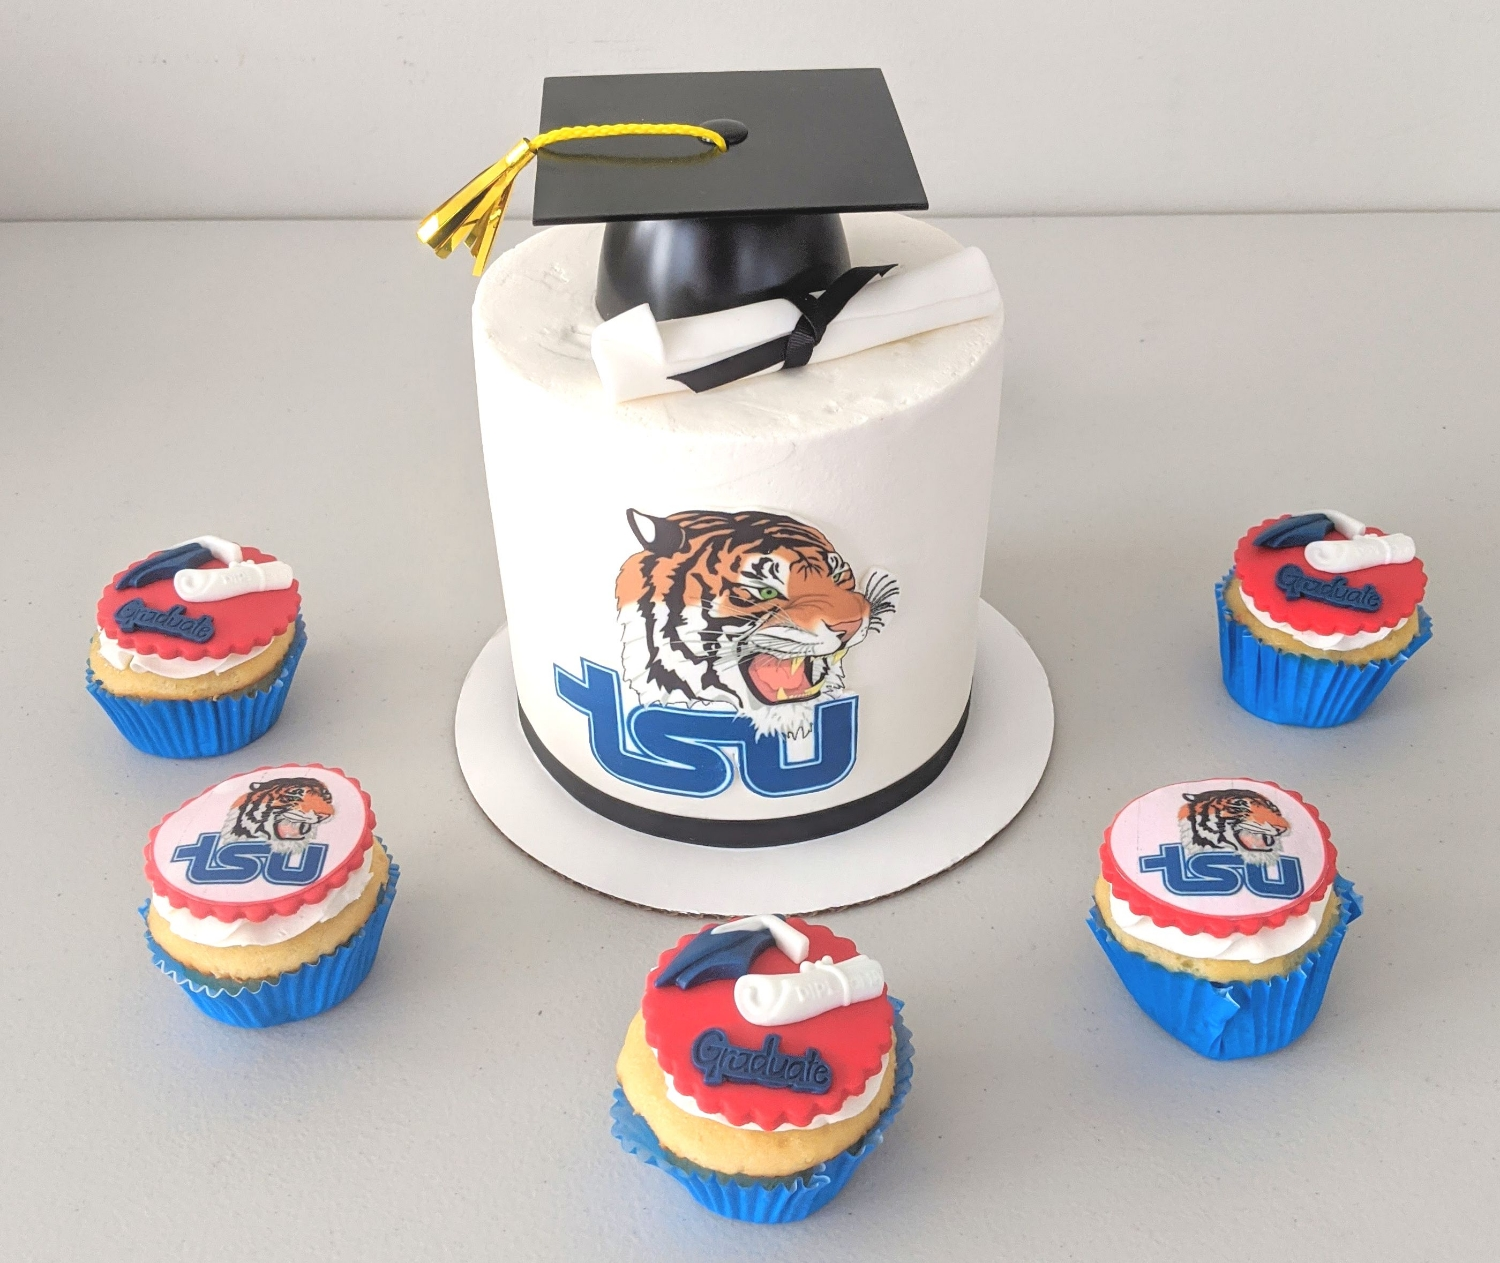 Graduation Cake & Cupcakes